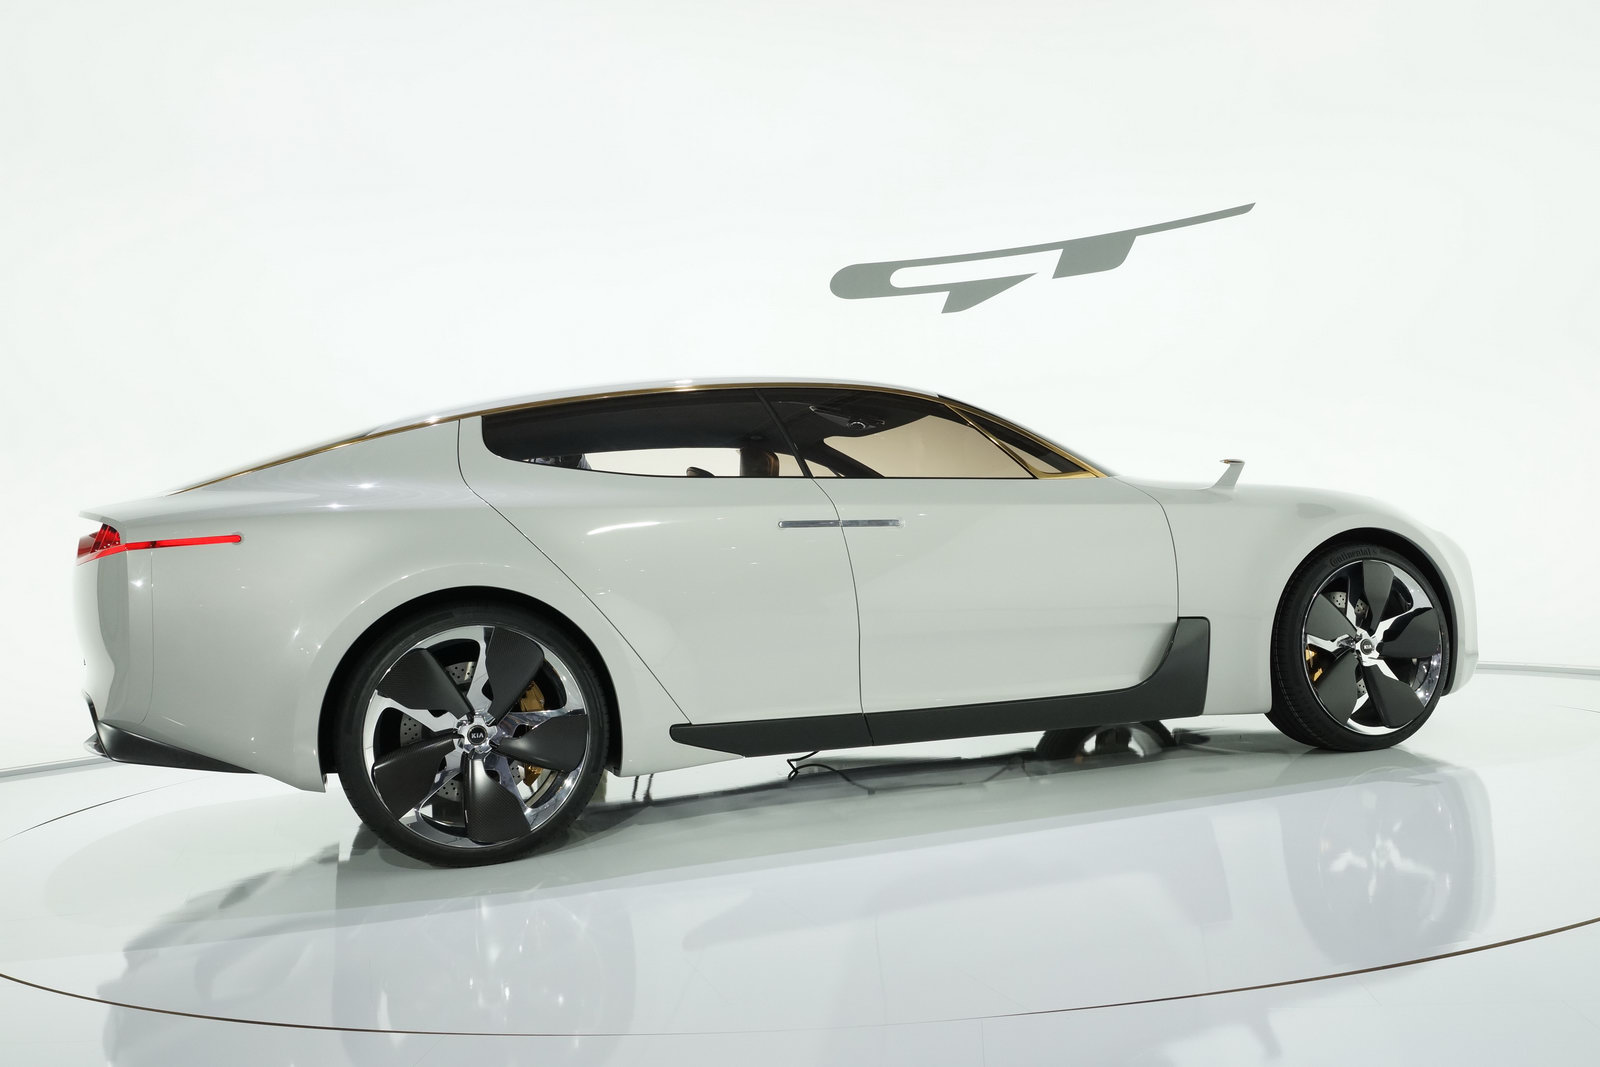 2011 KIA RWD GT Concept 4 2011 Concept of Kia Becomes Production?